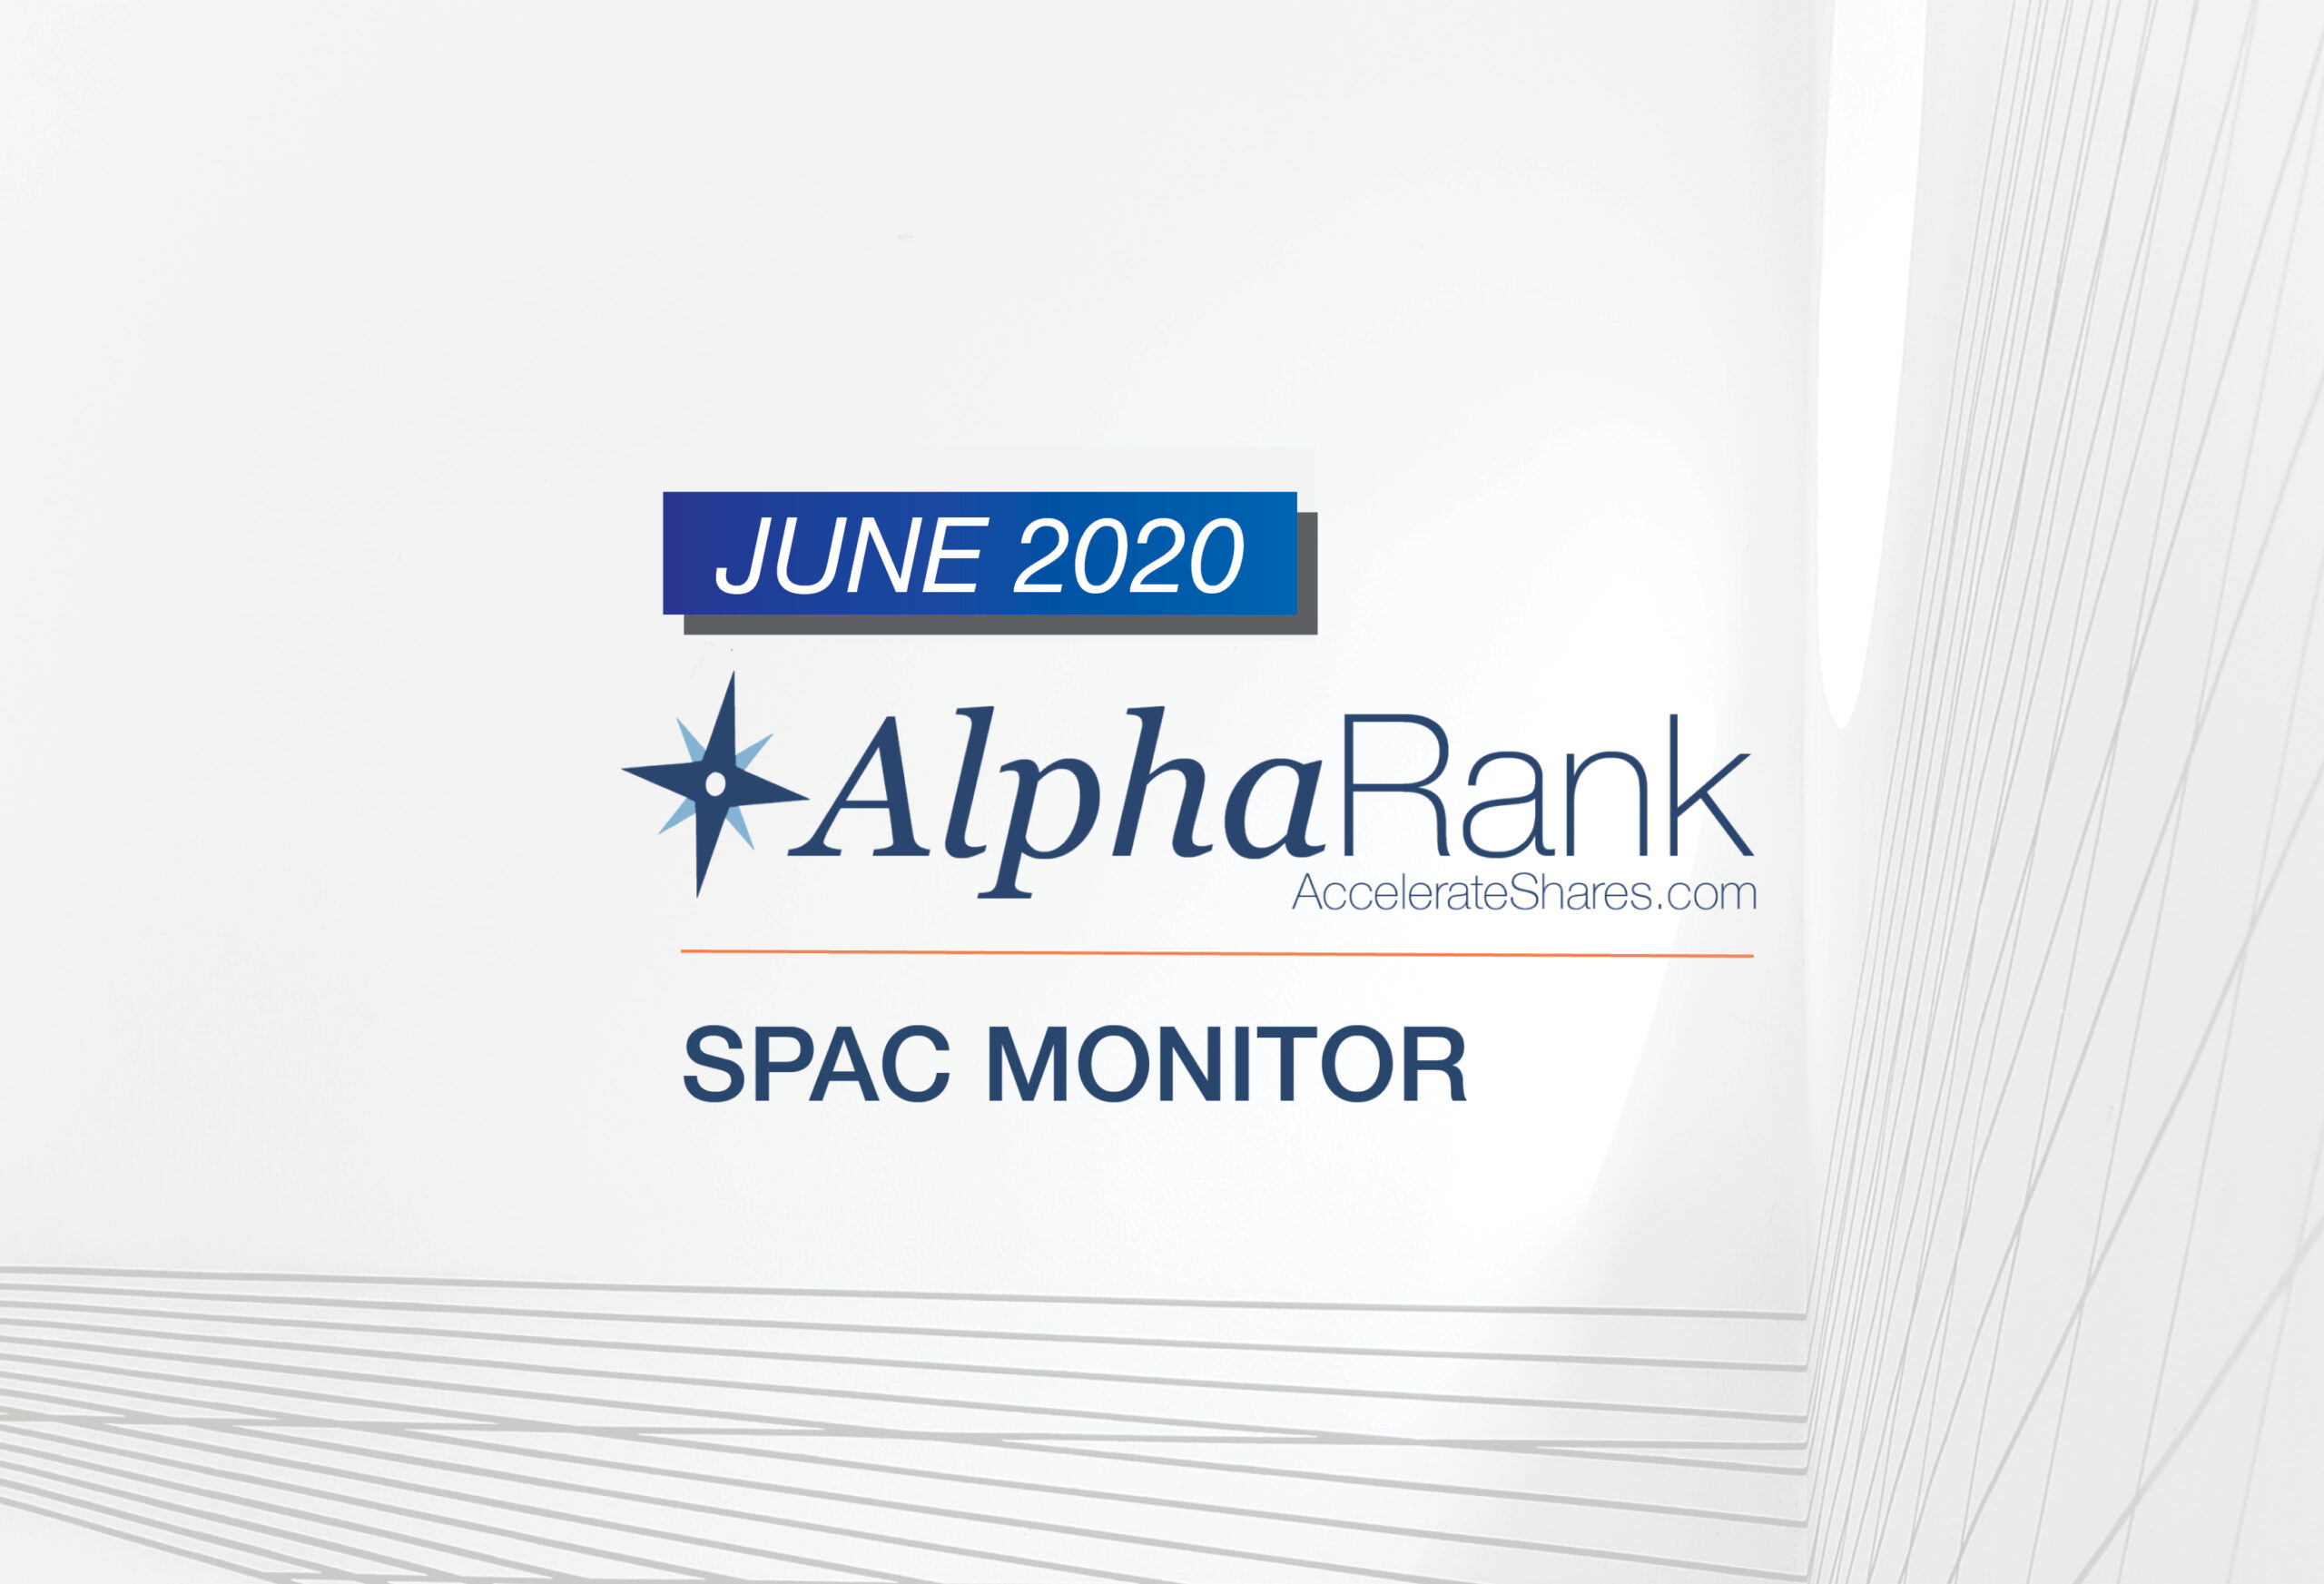 AlphaRank SPAC Monitor – June 2020